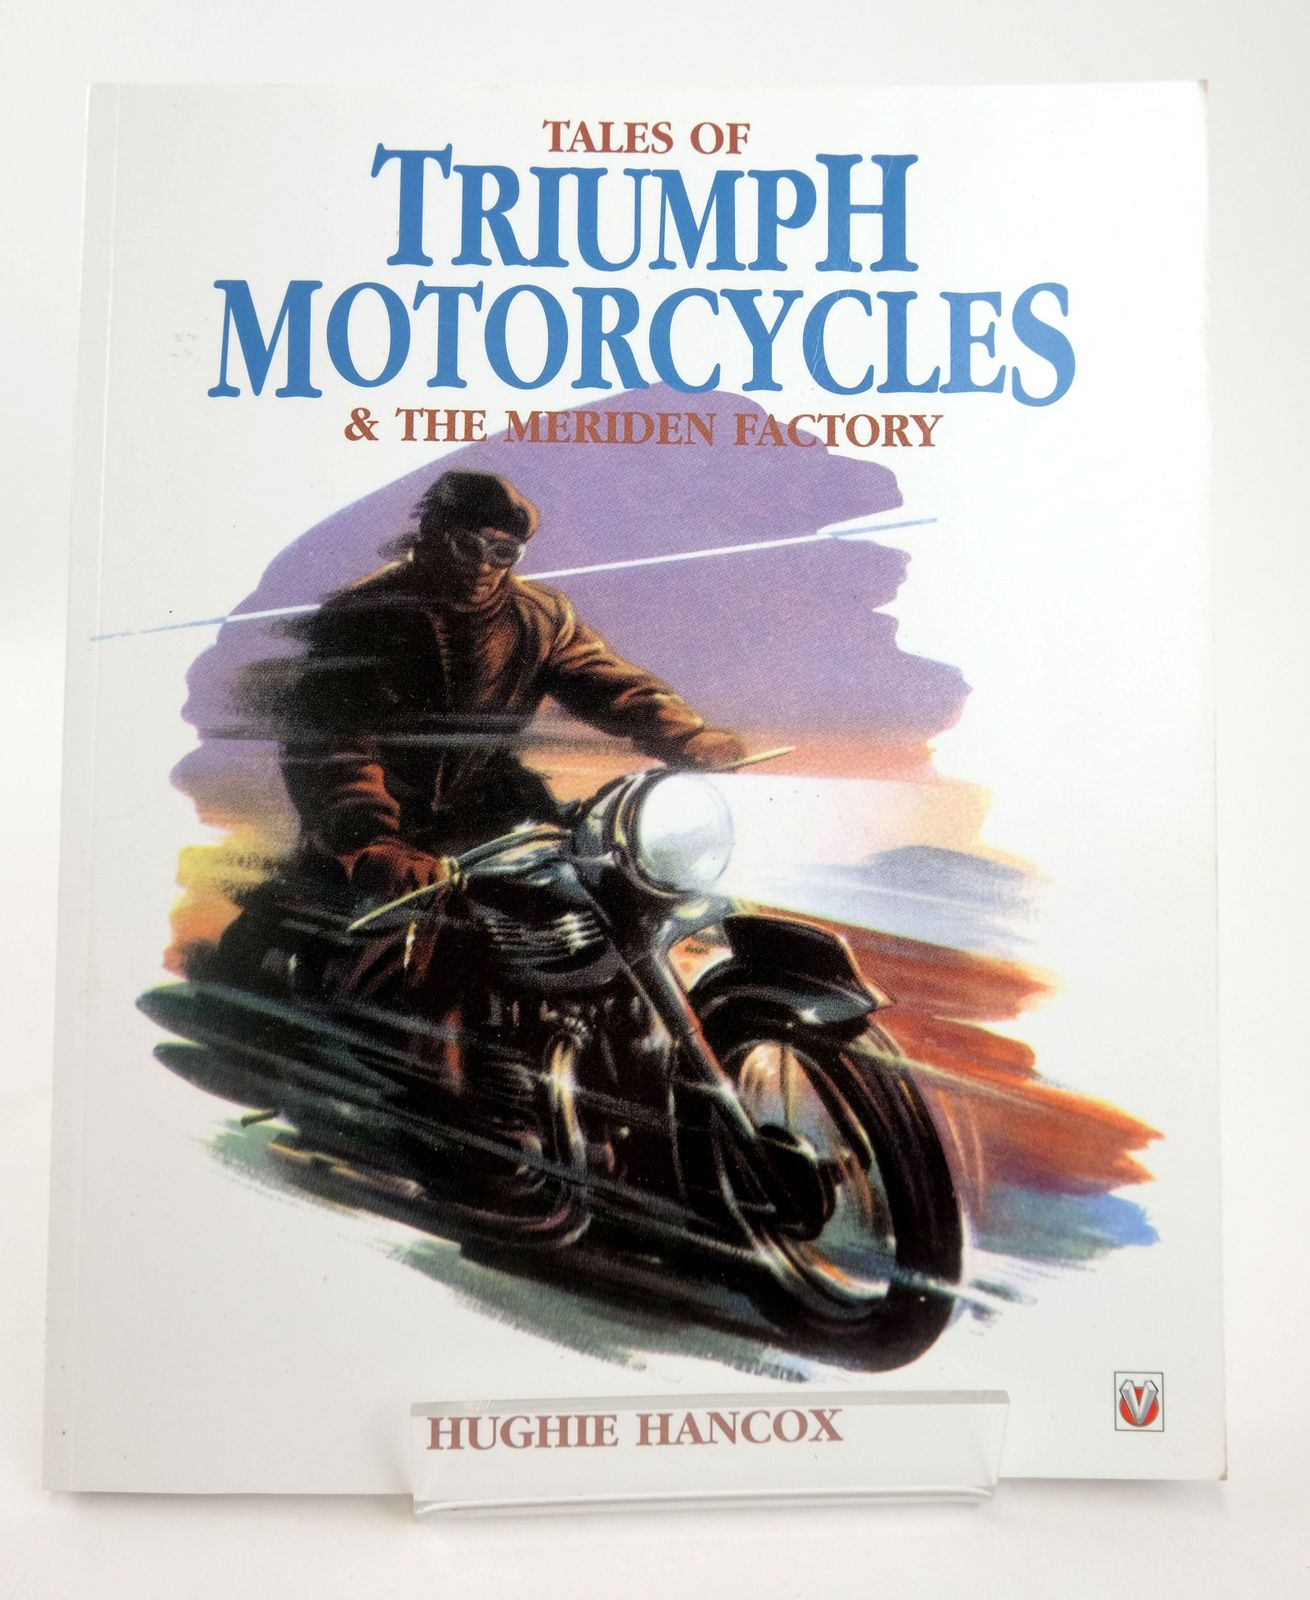 Photo of TALES OF TRIUMPH MOTORCYCLES & THE MERIDEN FACTORY written by Hancox, Hughie published by Veloce Publishing (STOCK CODE: 1818780)  for sale by Stella & Rose's Books